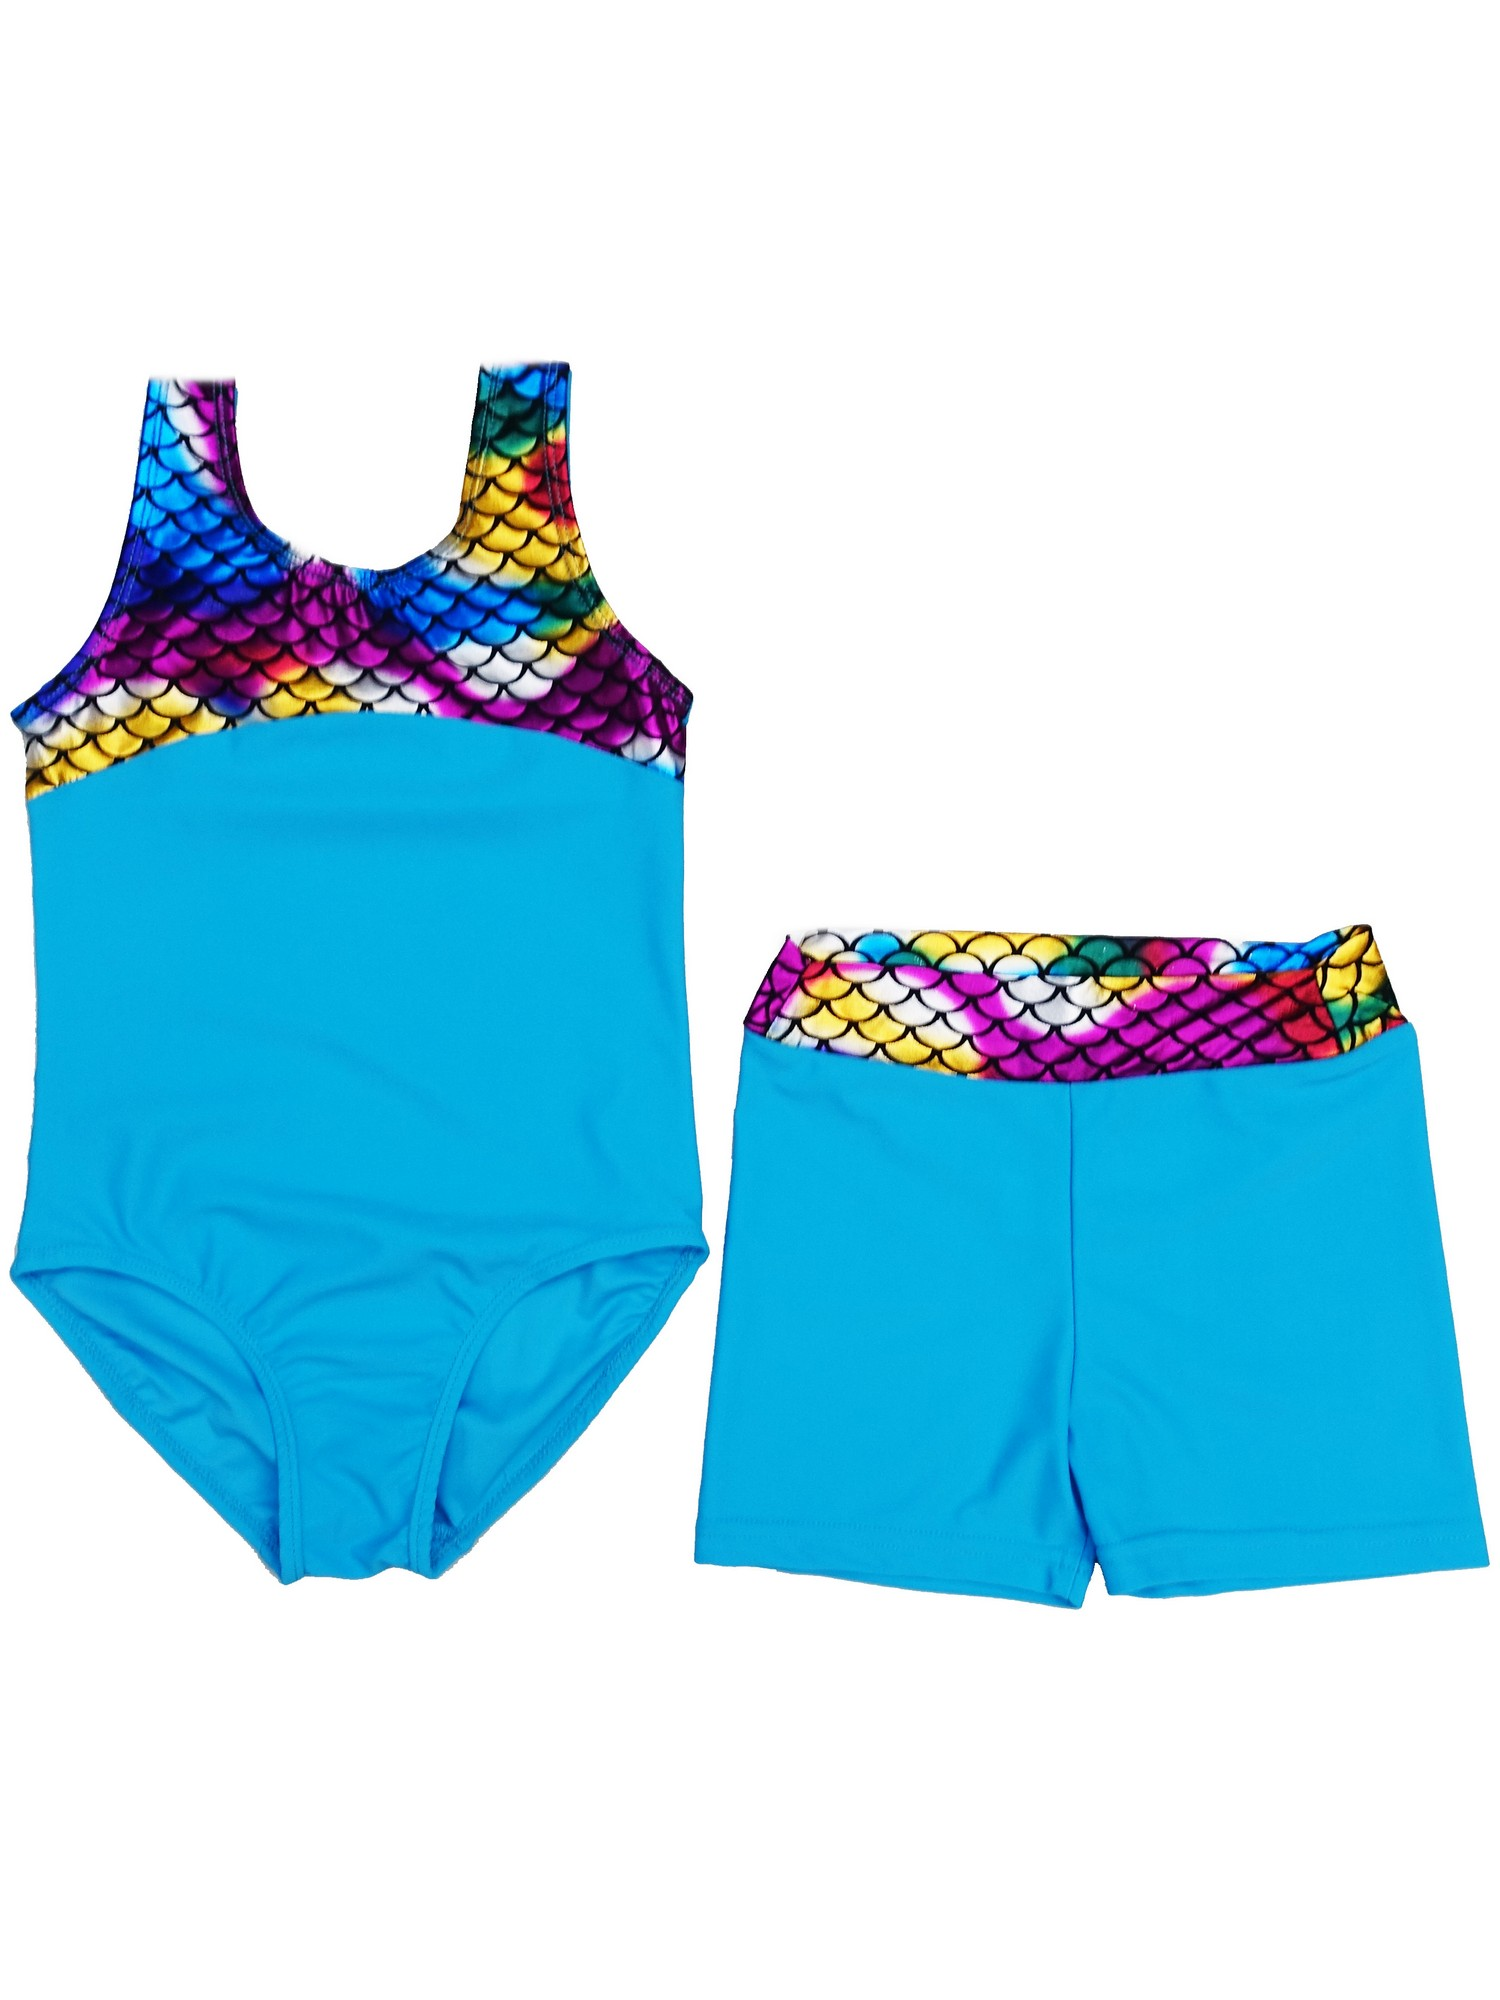 Wenchoice Girls Blue Multi Rainbow Mermaid Scale Leotard Shorts Set